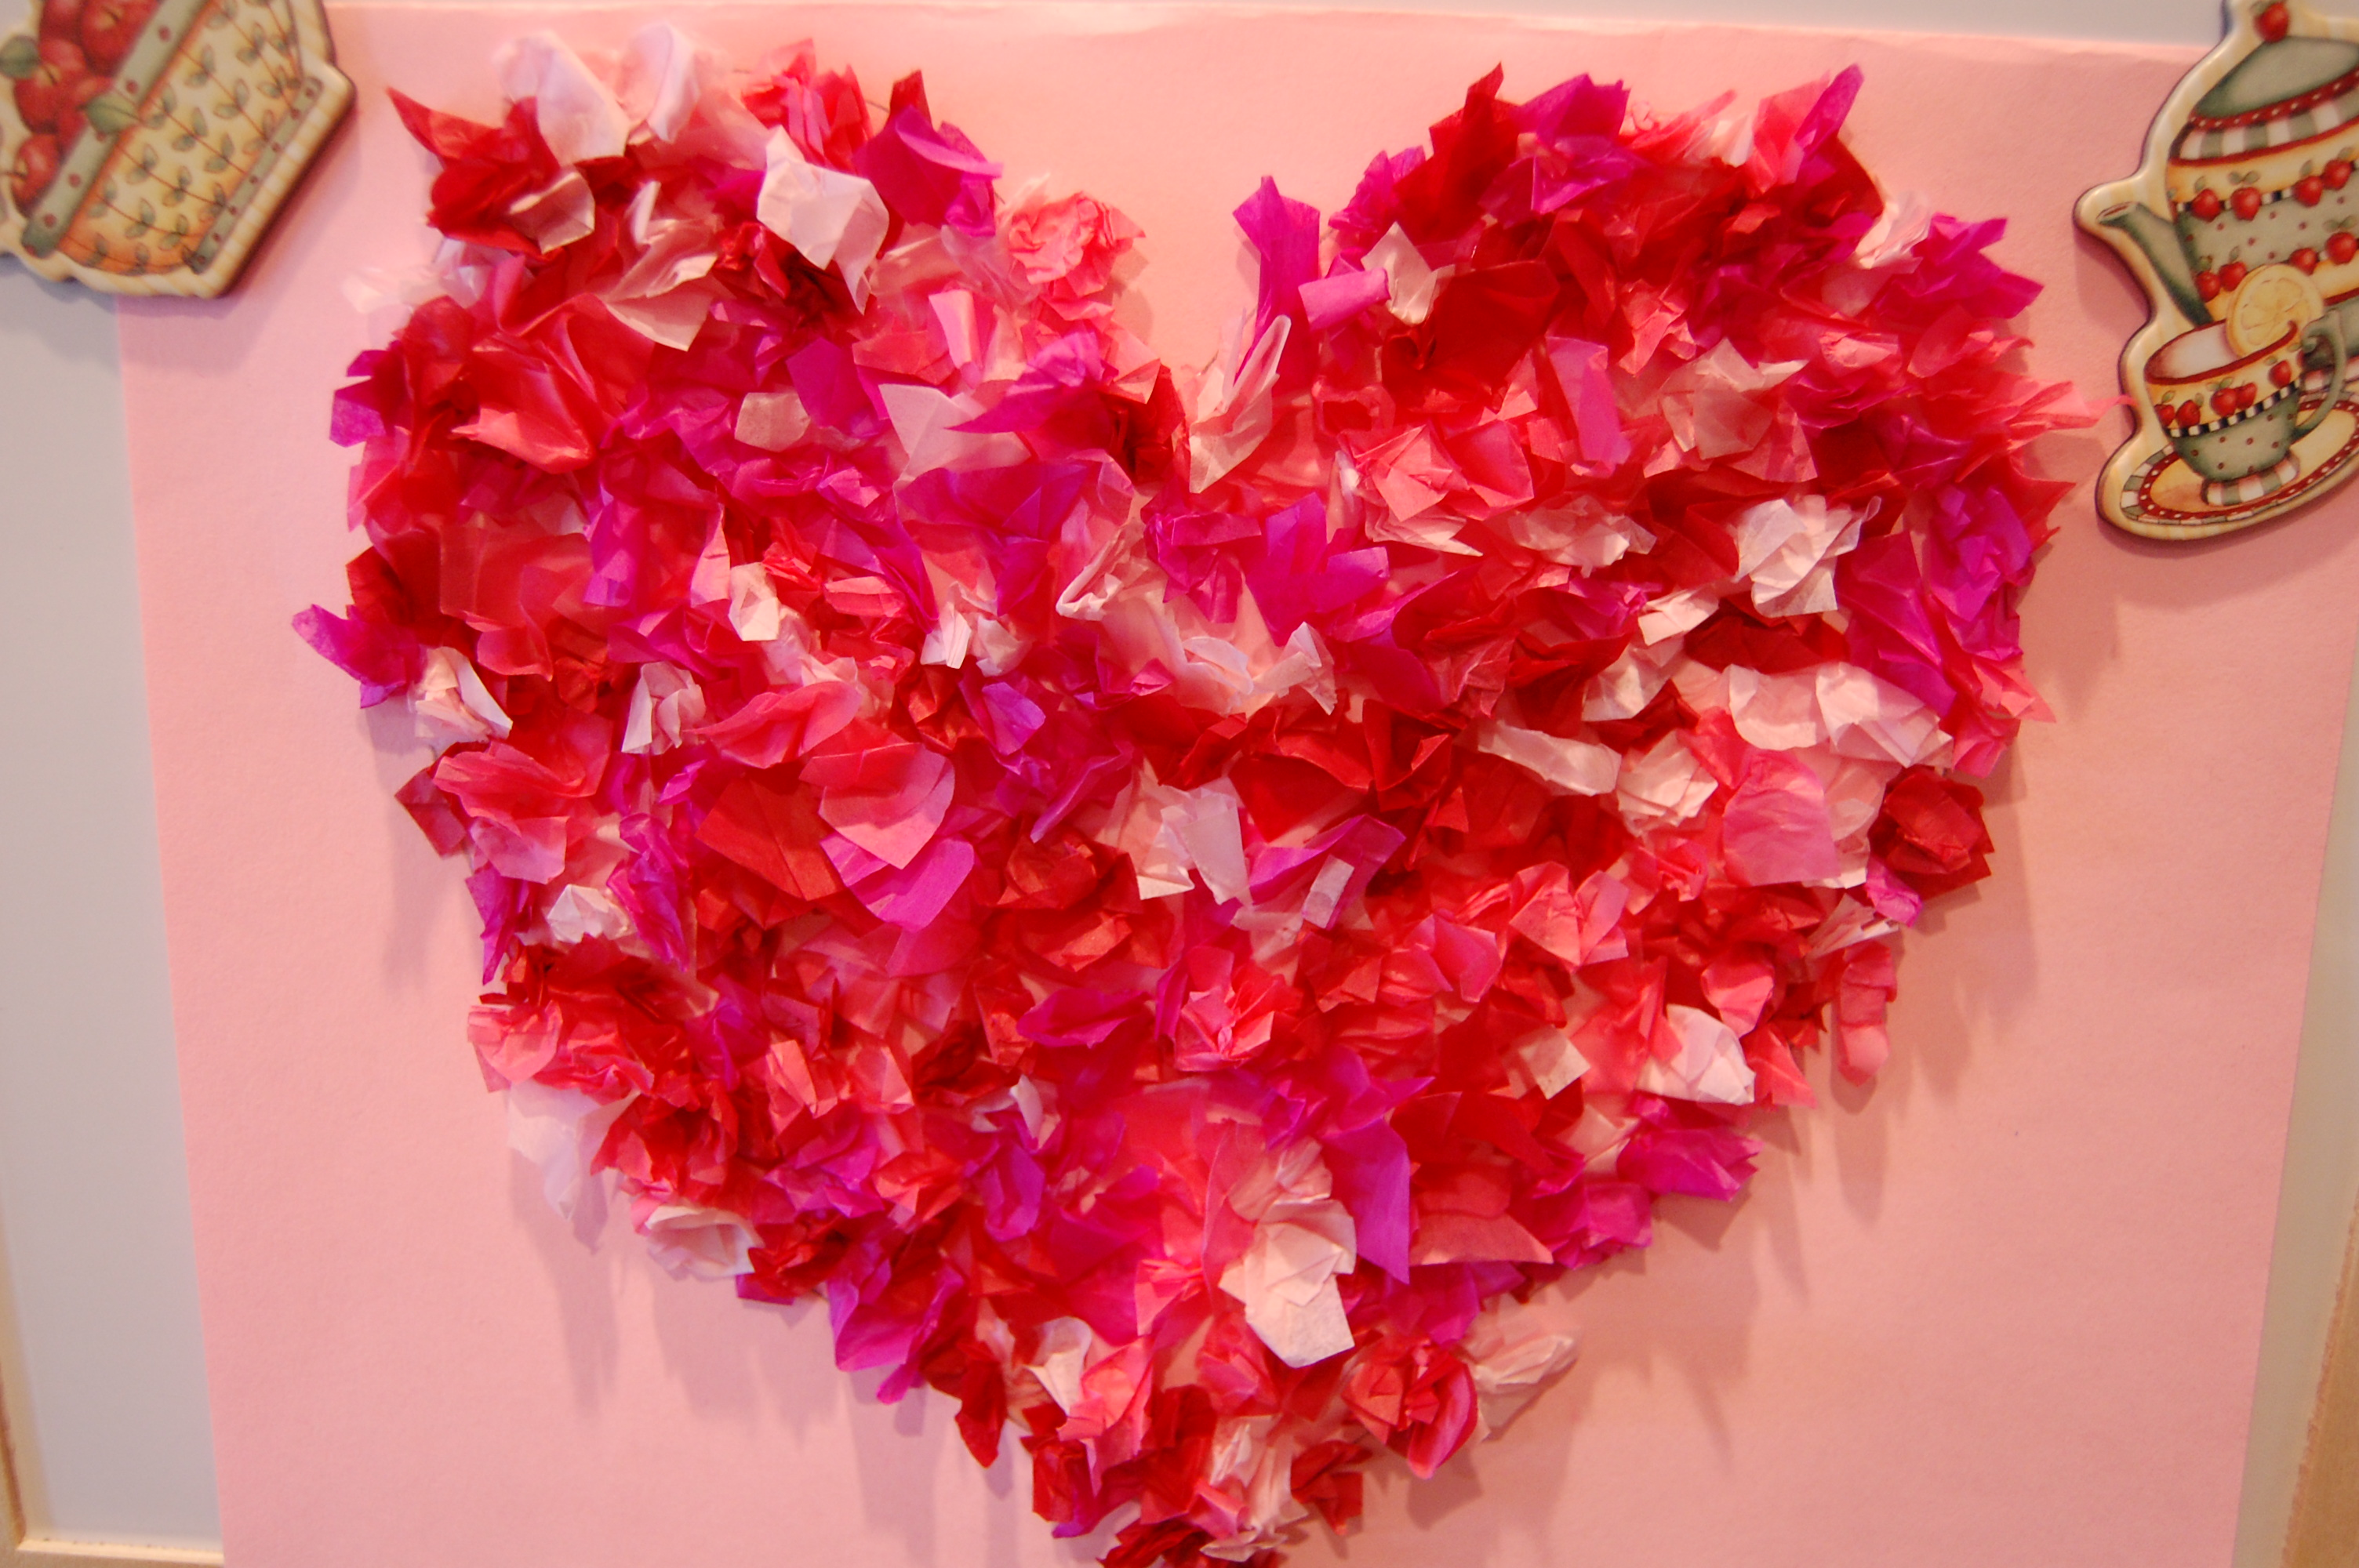 her tissue paper valentines heart art i asked her who she would gift it to and after a few seconds of thought she said it was for me sniff